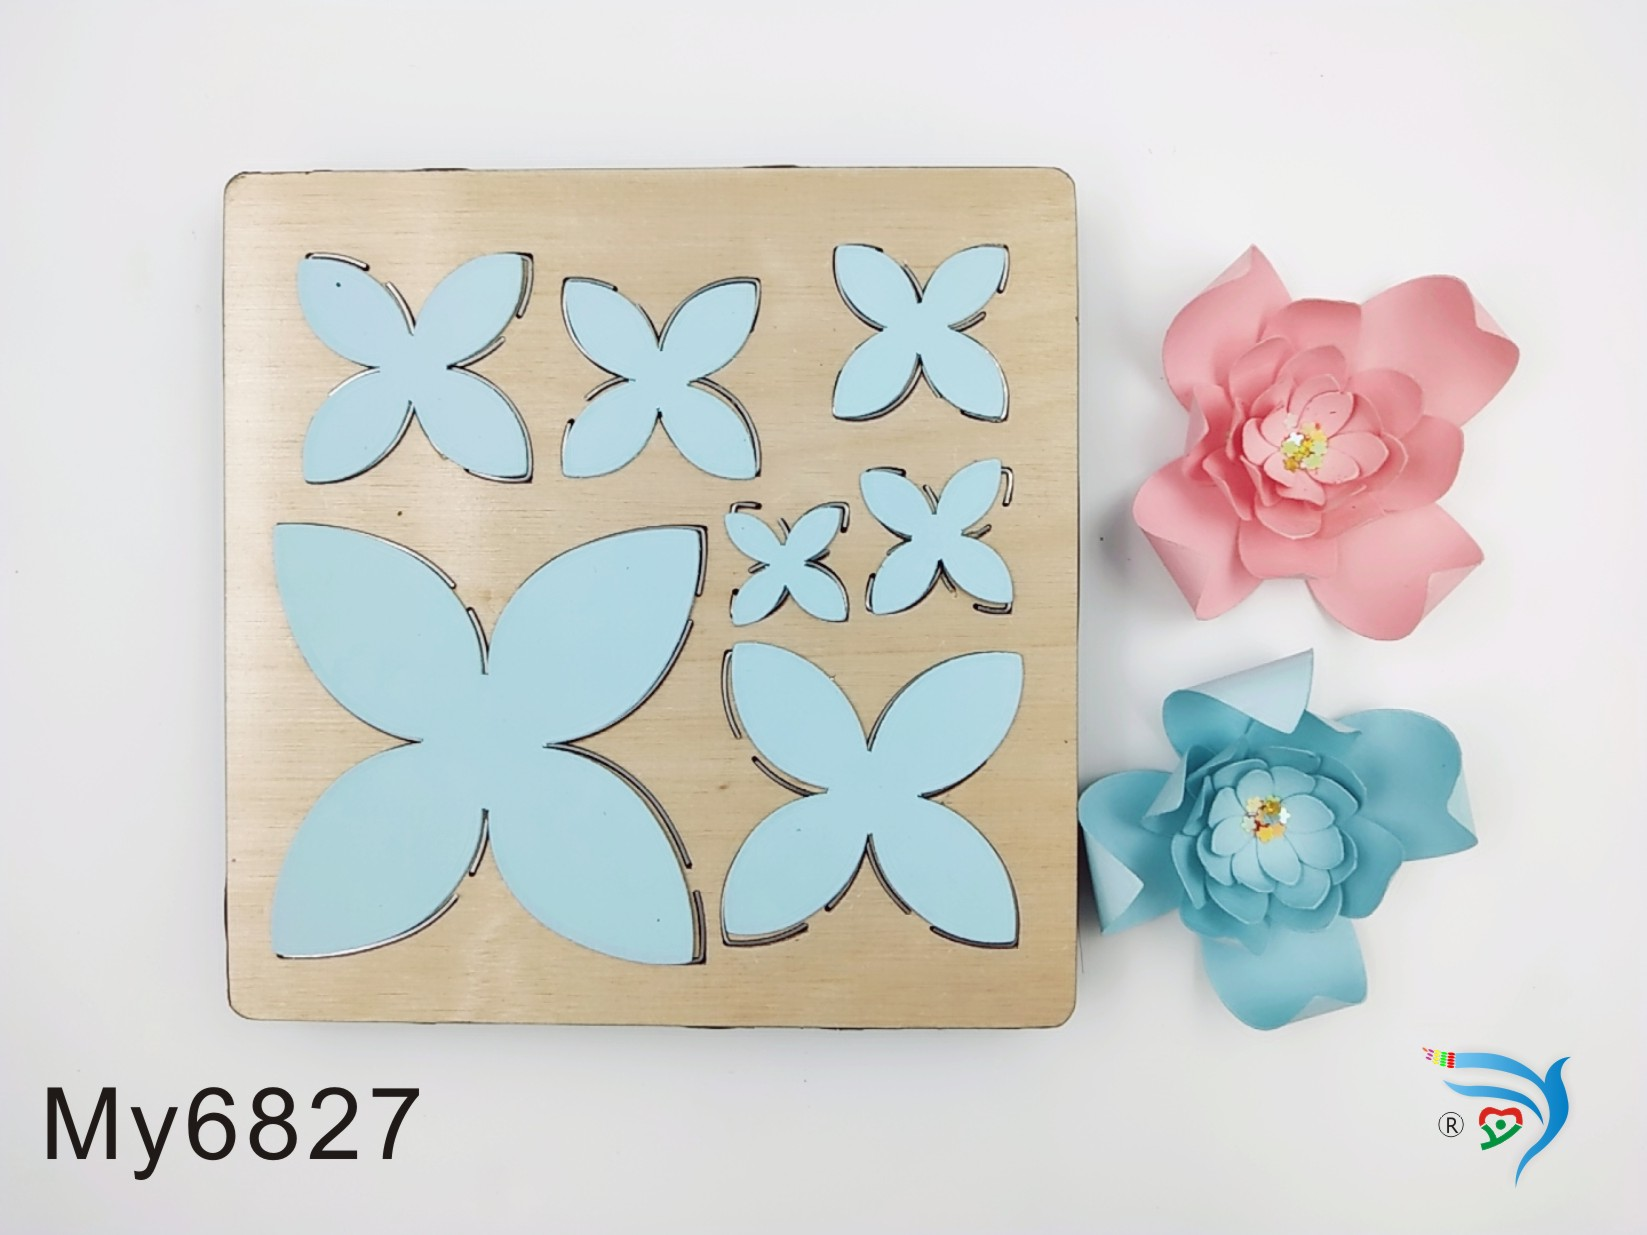 FLOWER2 muyu cutting die new wooden mould cutting dies for scrapbooking Thickness 15 8mm